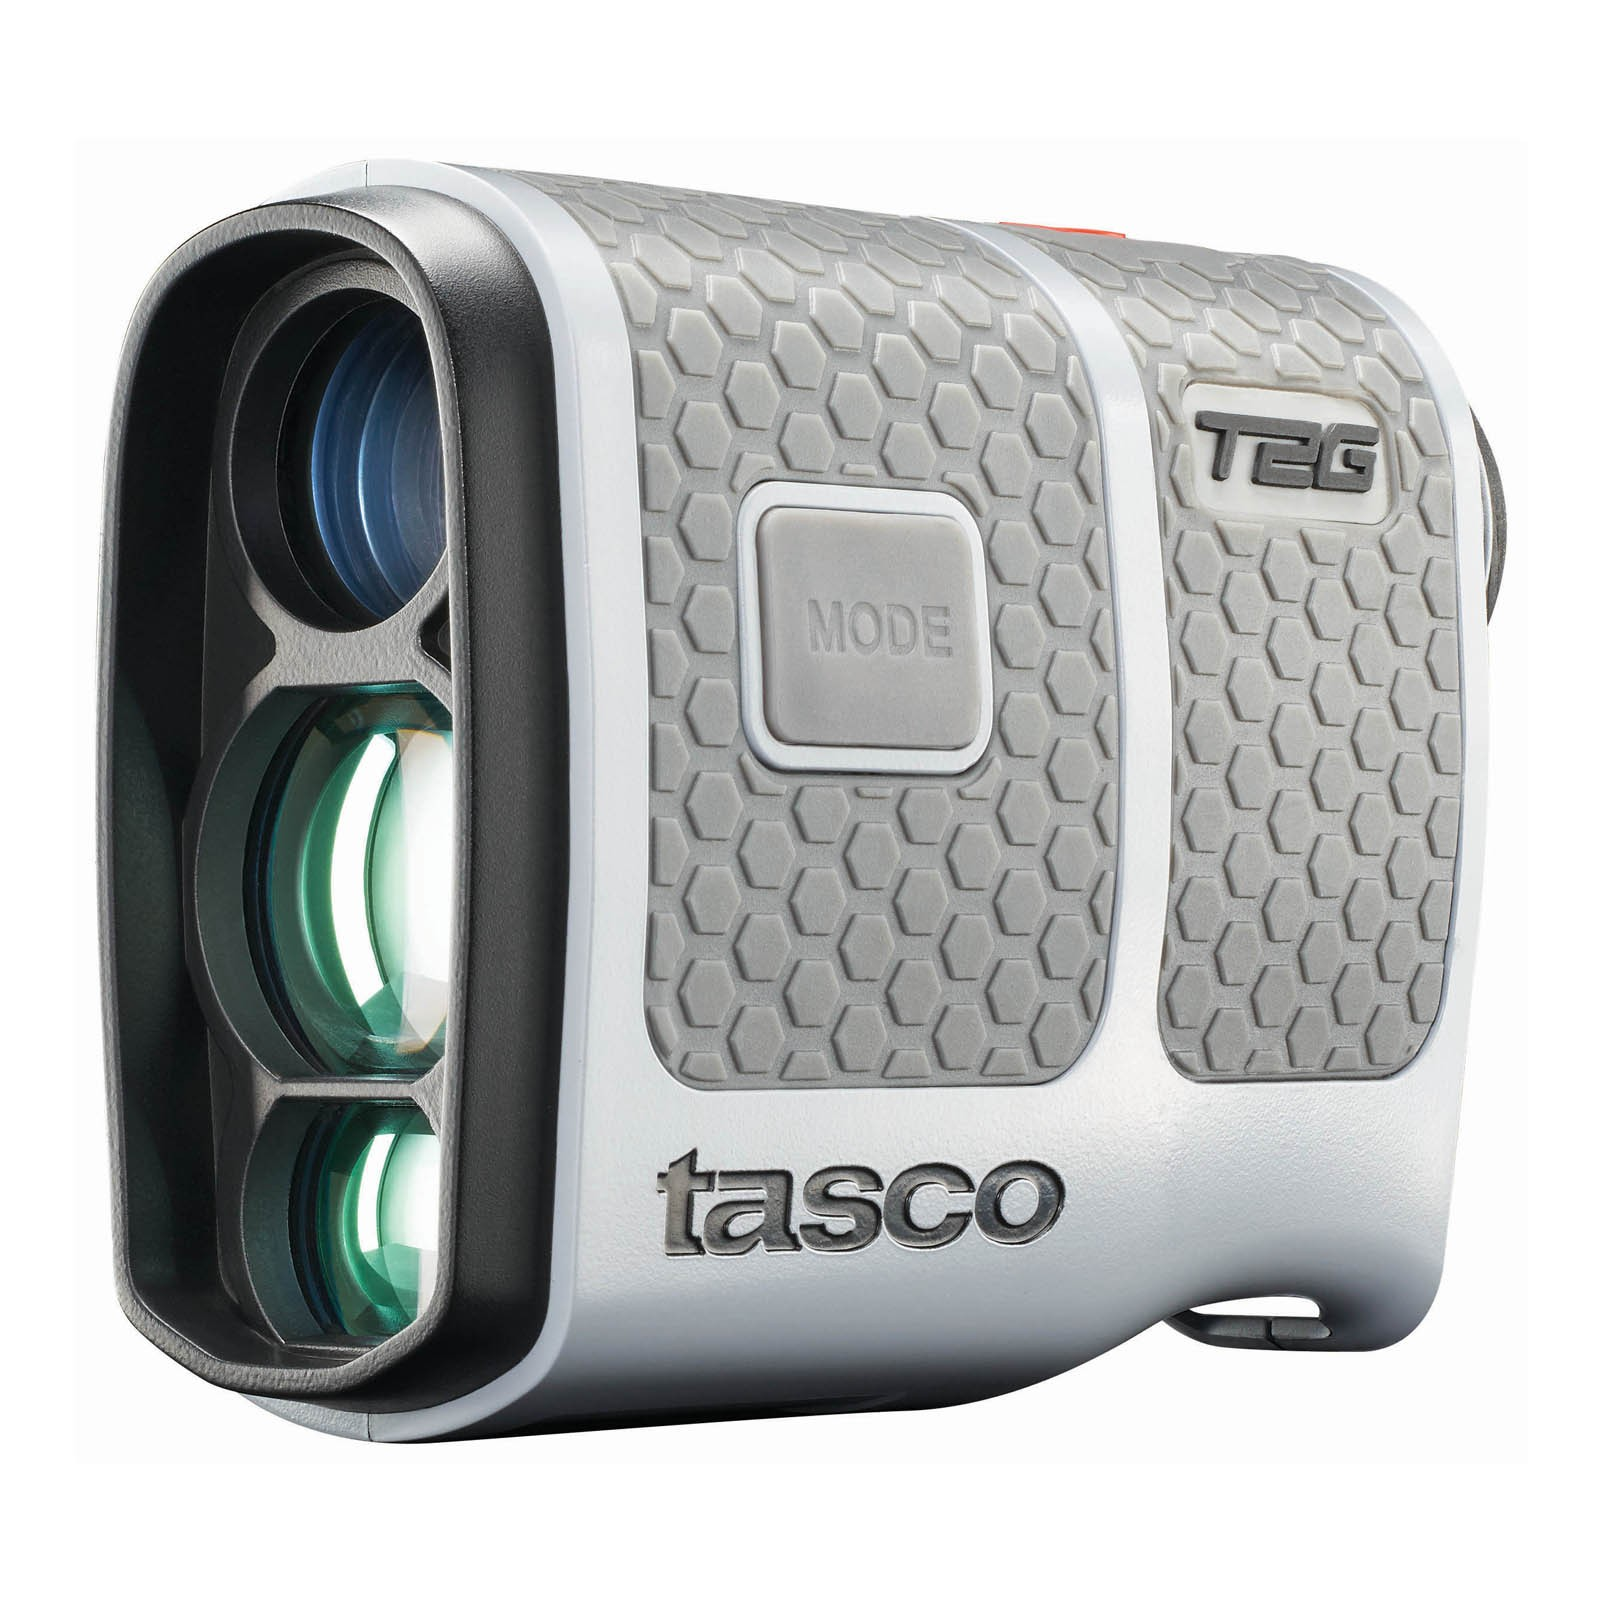 Tasco Tee 2 Green Tour Rangefinders